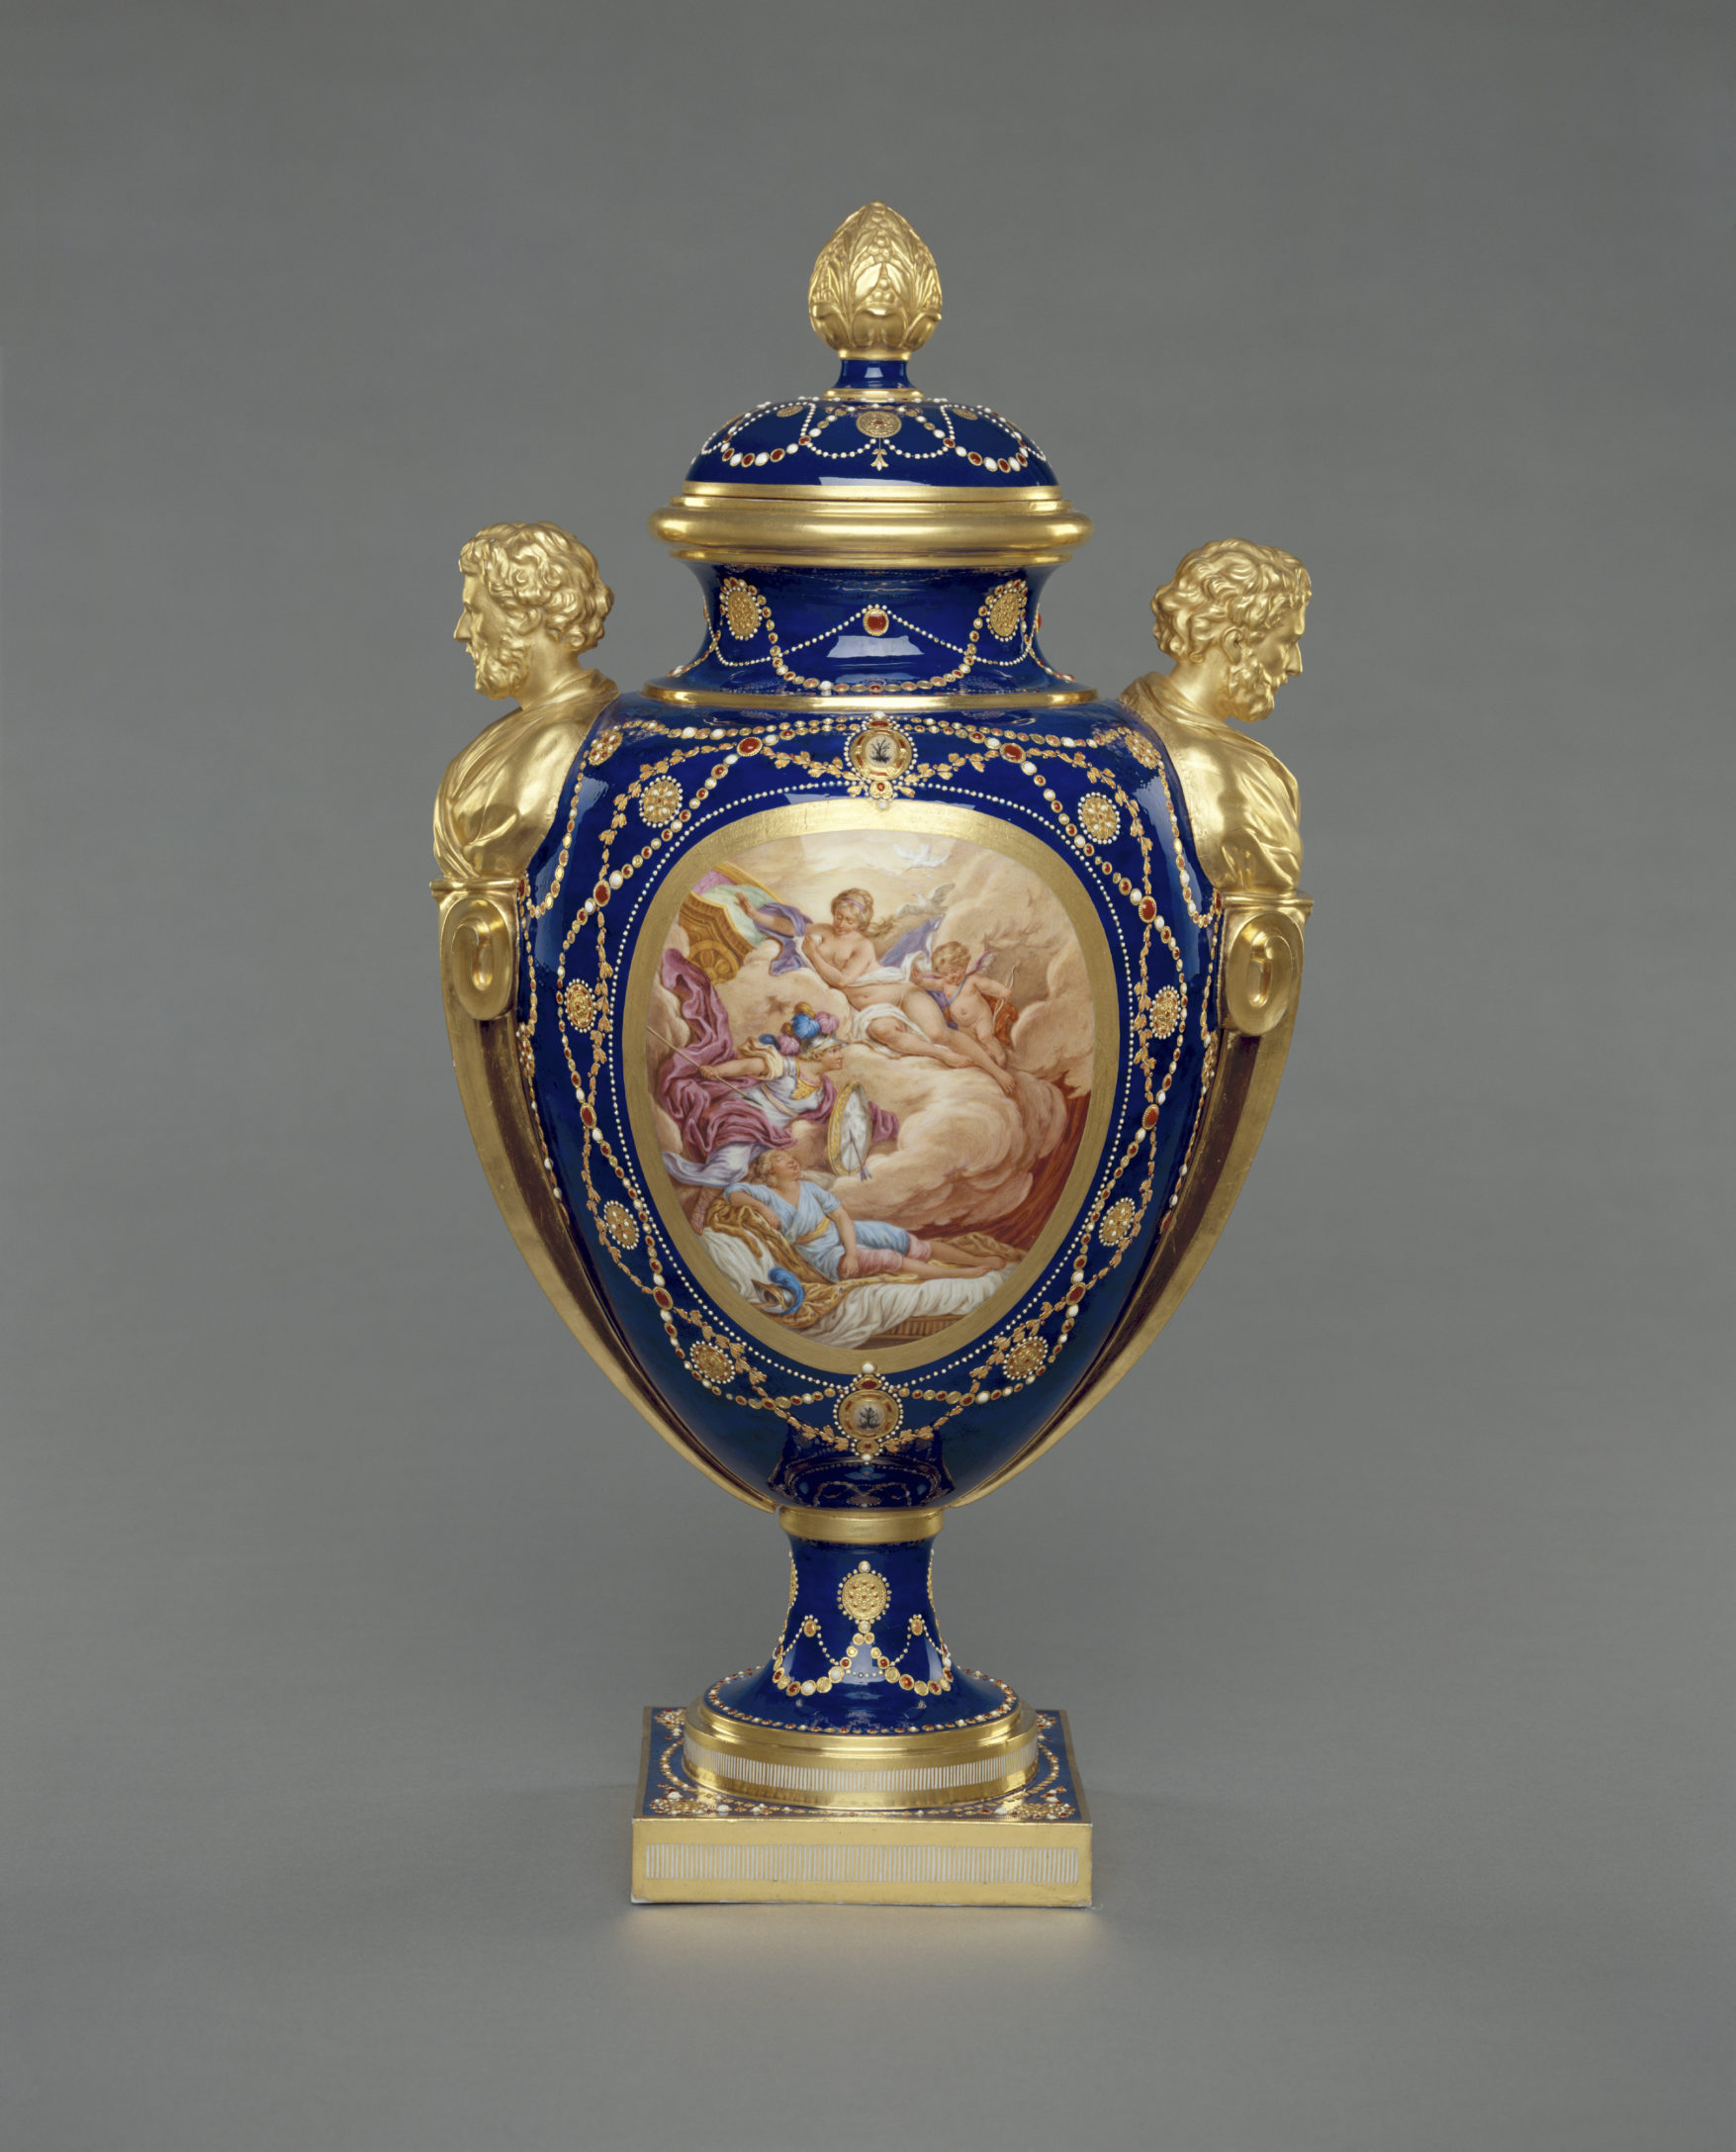 One of a garniture of three lidded, Sèvres 'vase des âges', 1781 with 'jewelling' by Philippe Parpette. (The J. Paul Getty Museum, Los Angeles, Inv. no. 84.DE.718.1-3)